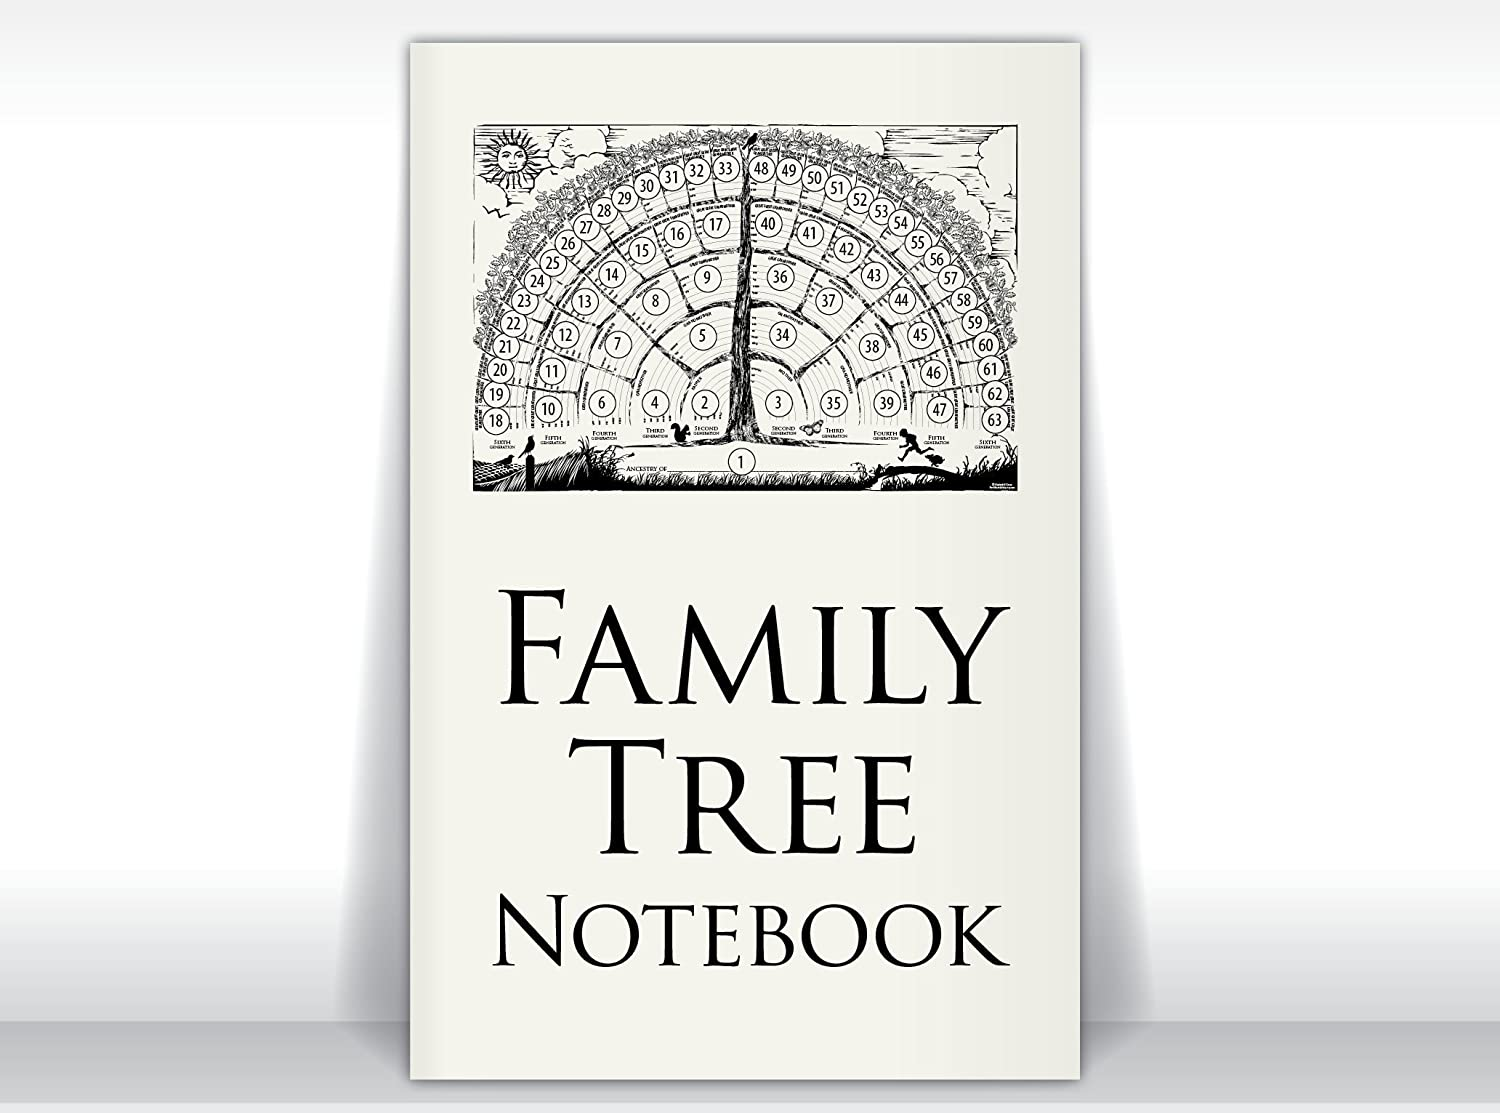 Family Tree Notebook, 2-books-per-order gifts for baby, men, women, grandparents, in-laws, children for genealogy memories/ancestor stories.